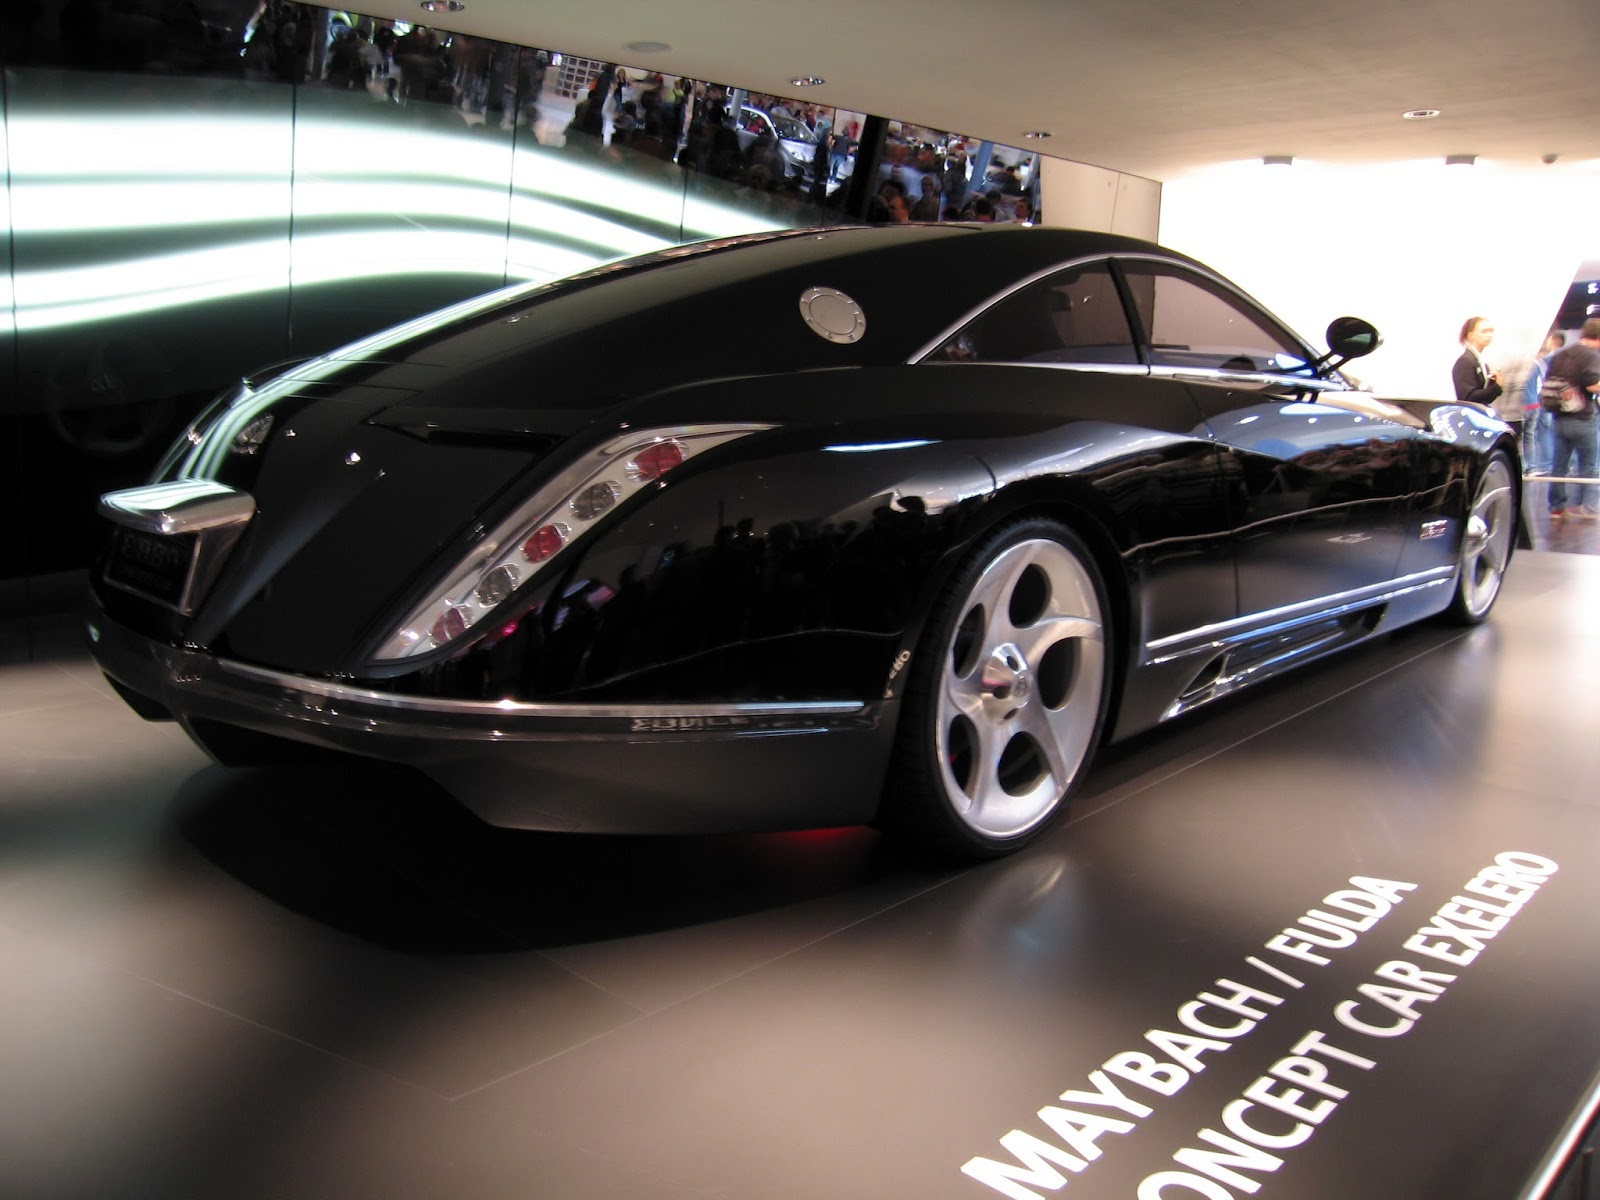 Maybch-Exelero 8-What is the most expensive car